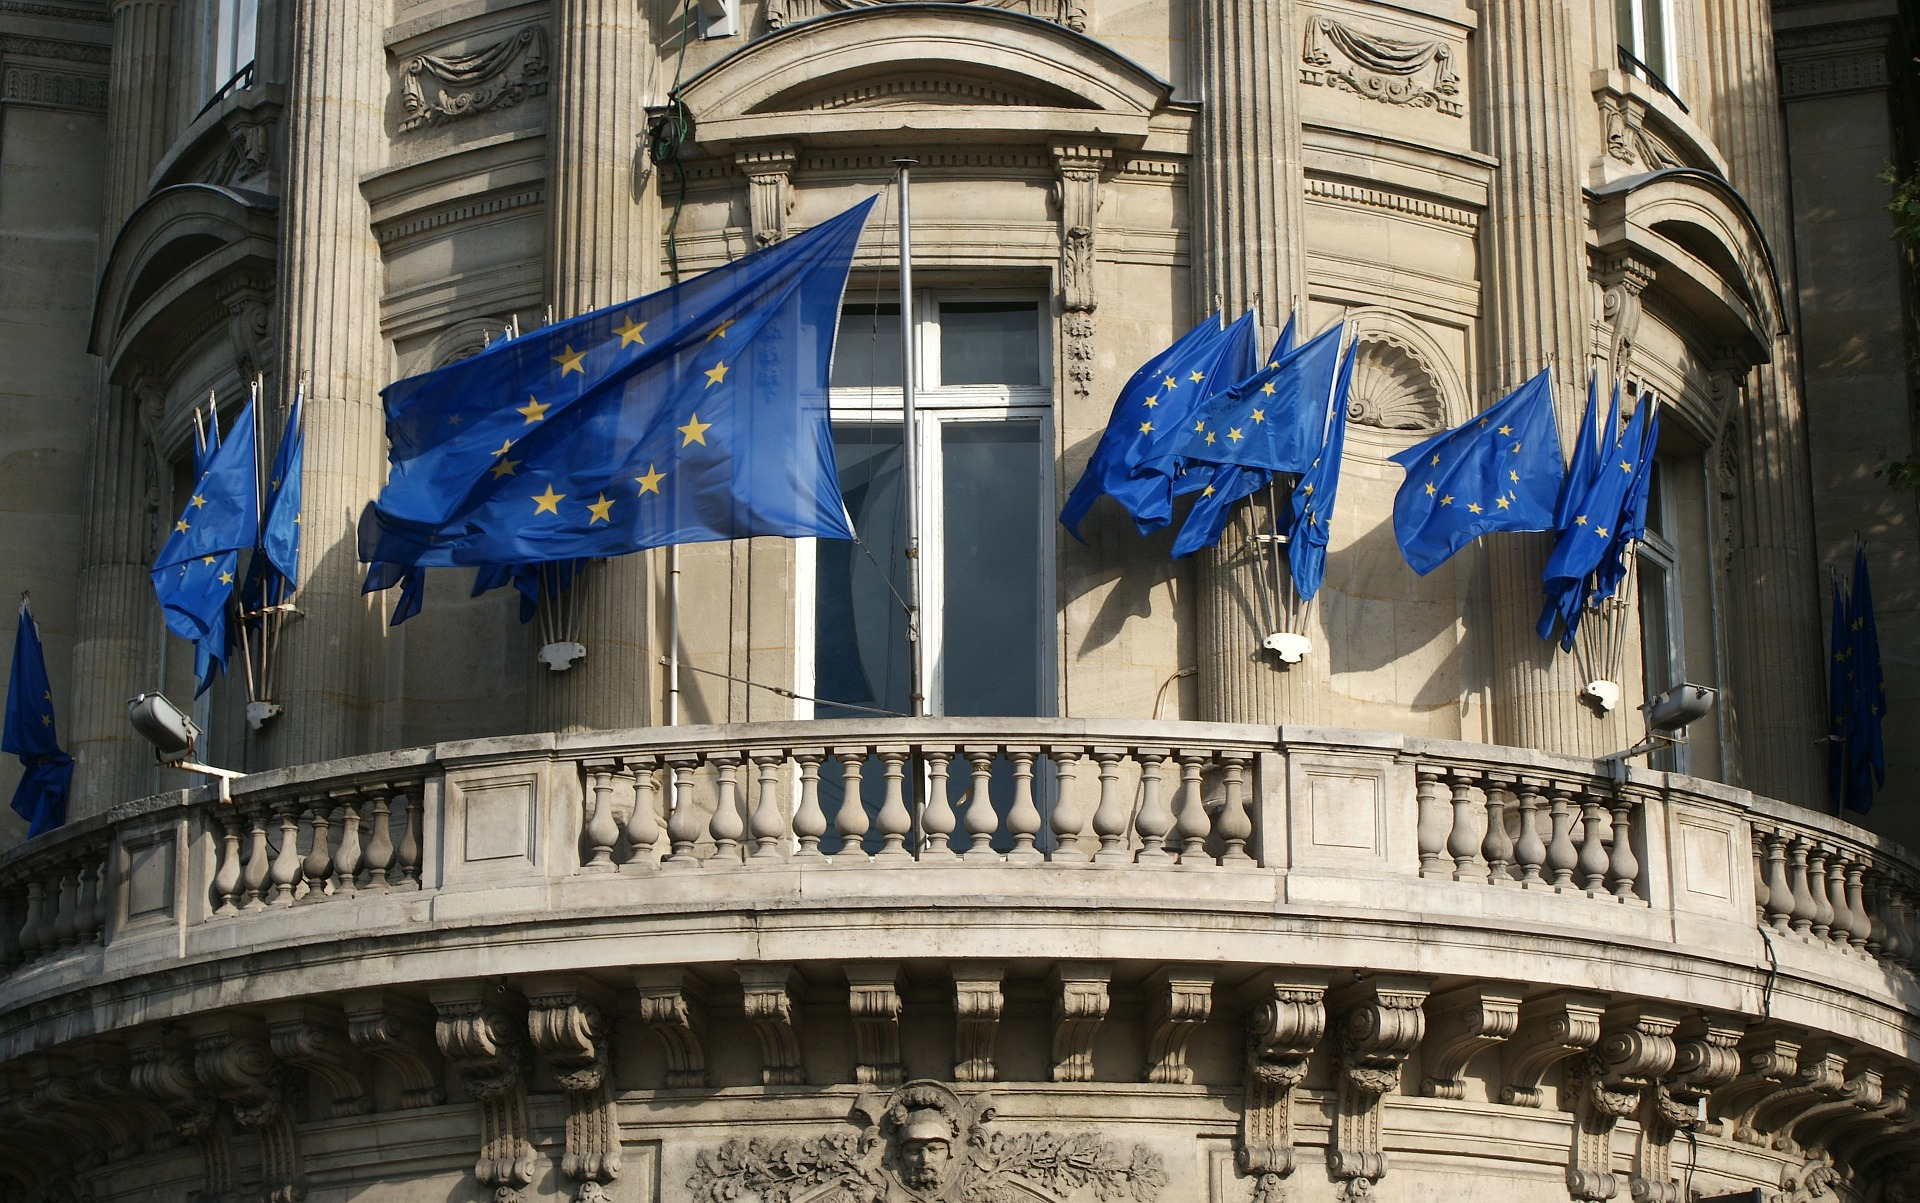 Building displaying the European flag.